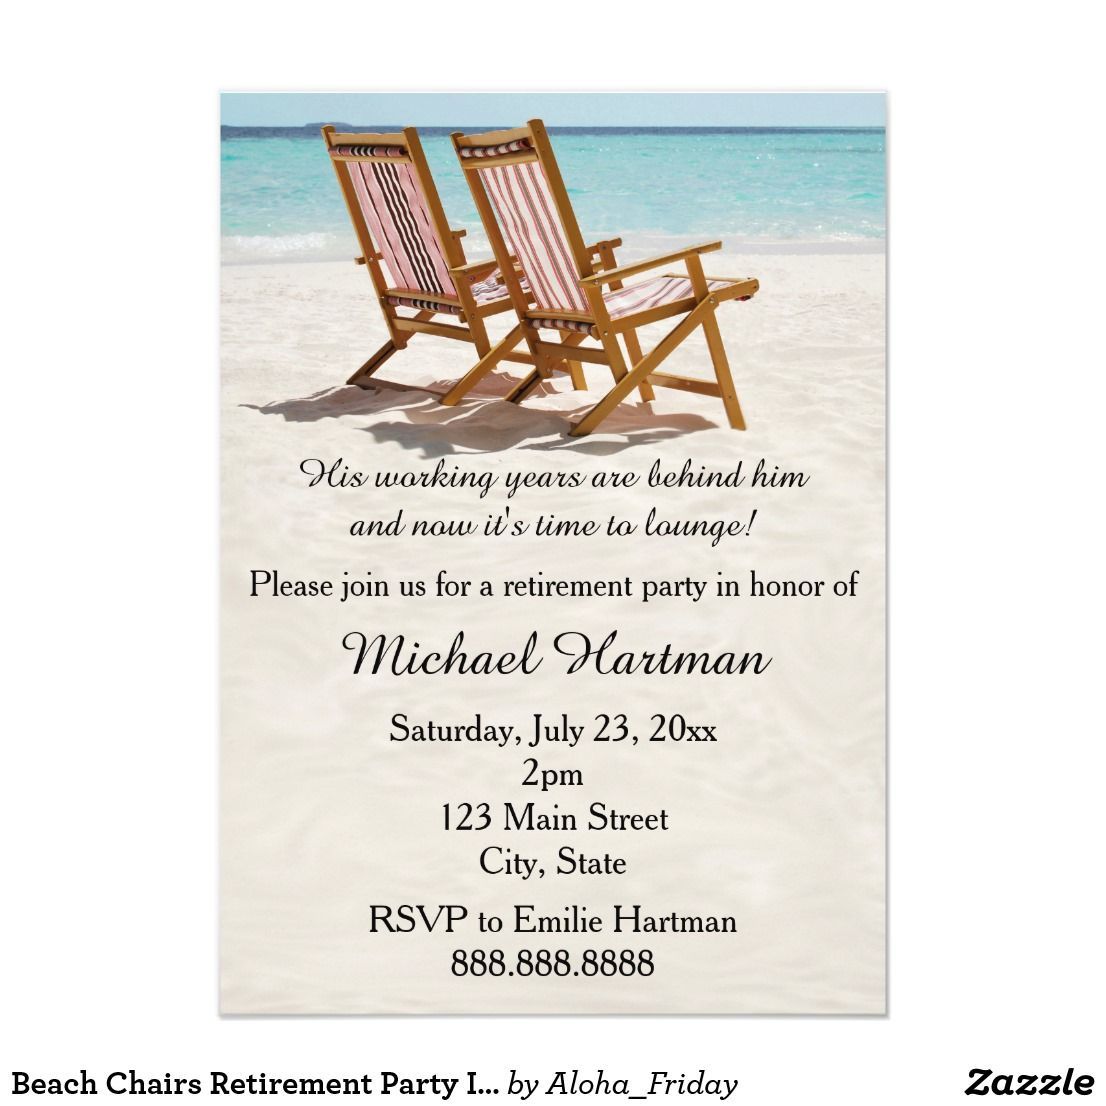 Beach Chairs Retirement Party Invitations   Retirement parties and ...